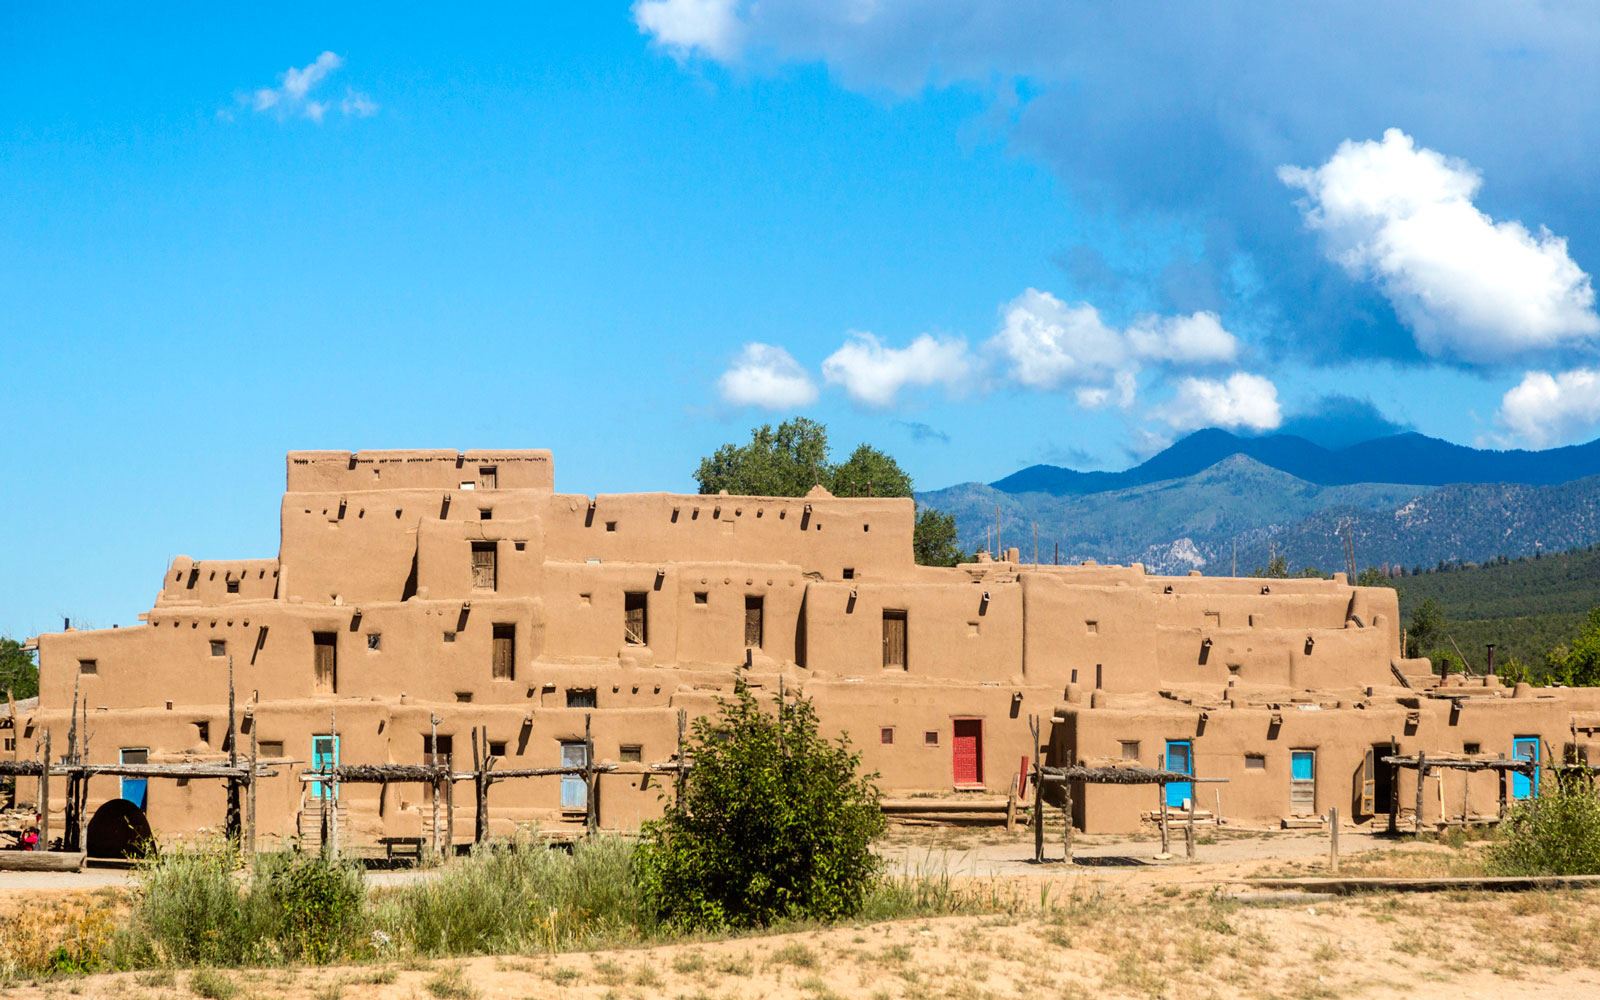 Taos Pueblo in Taos, NM